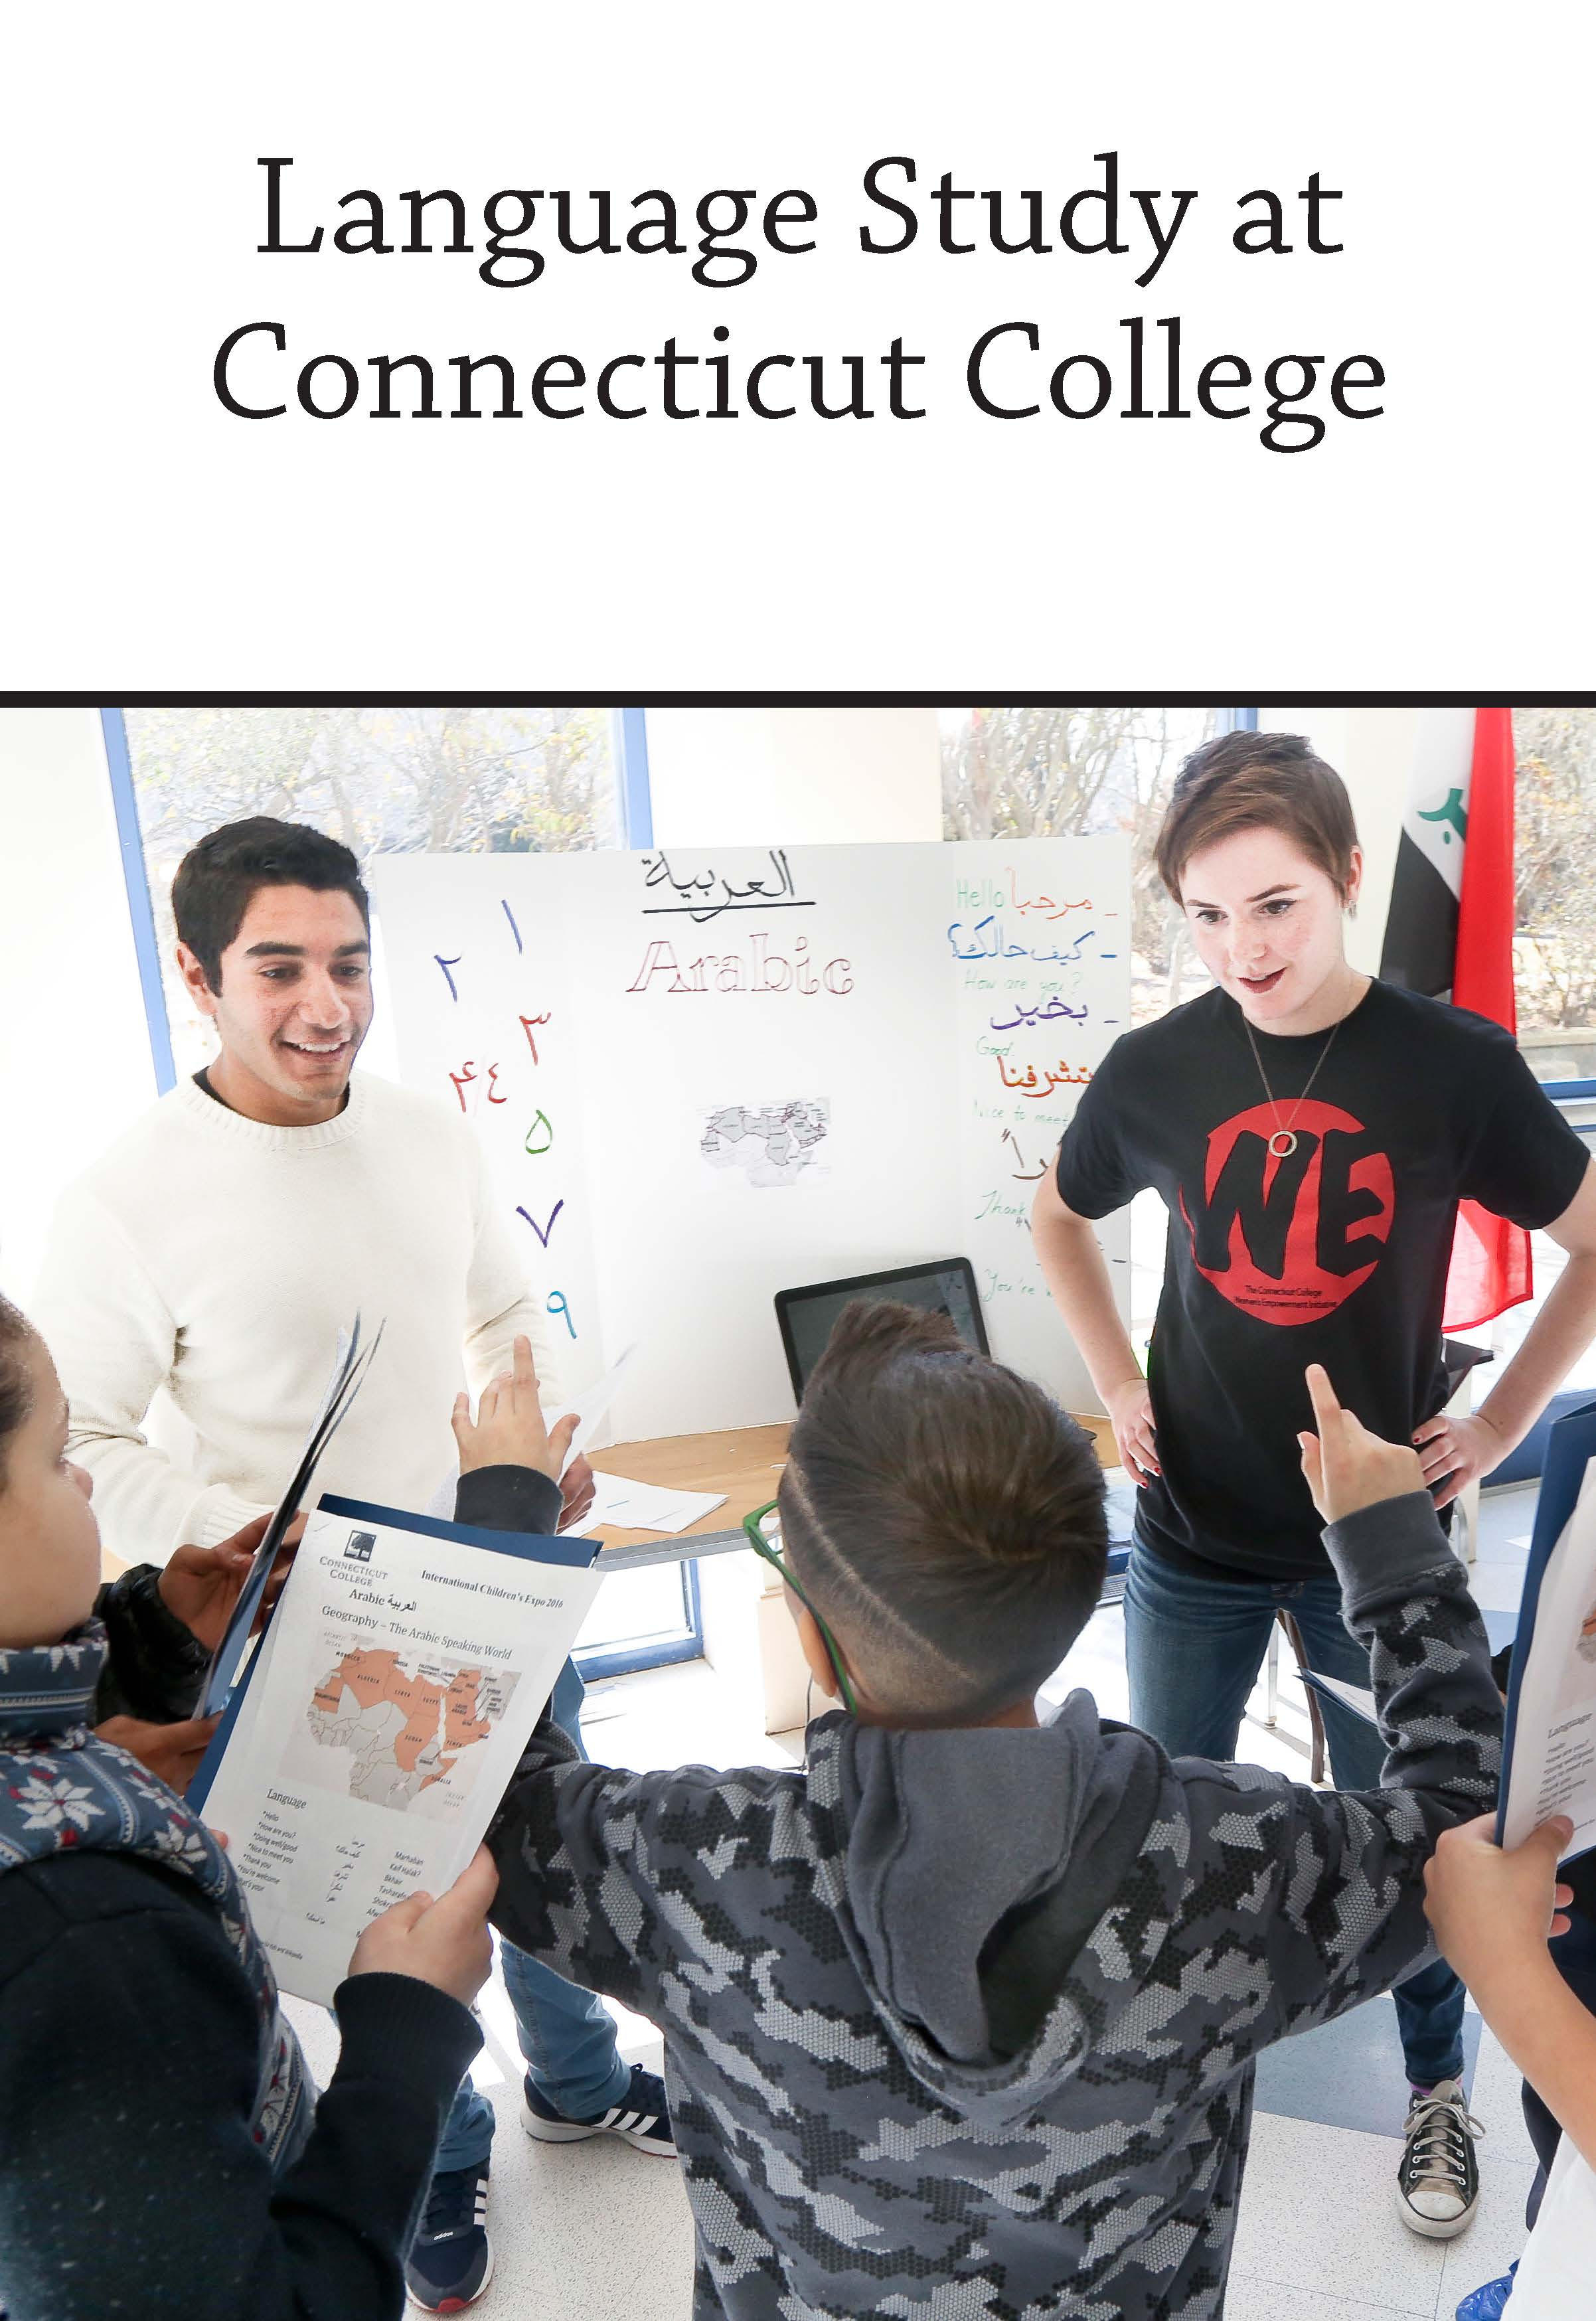 The cover of a brochure that explains language study at Conn